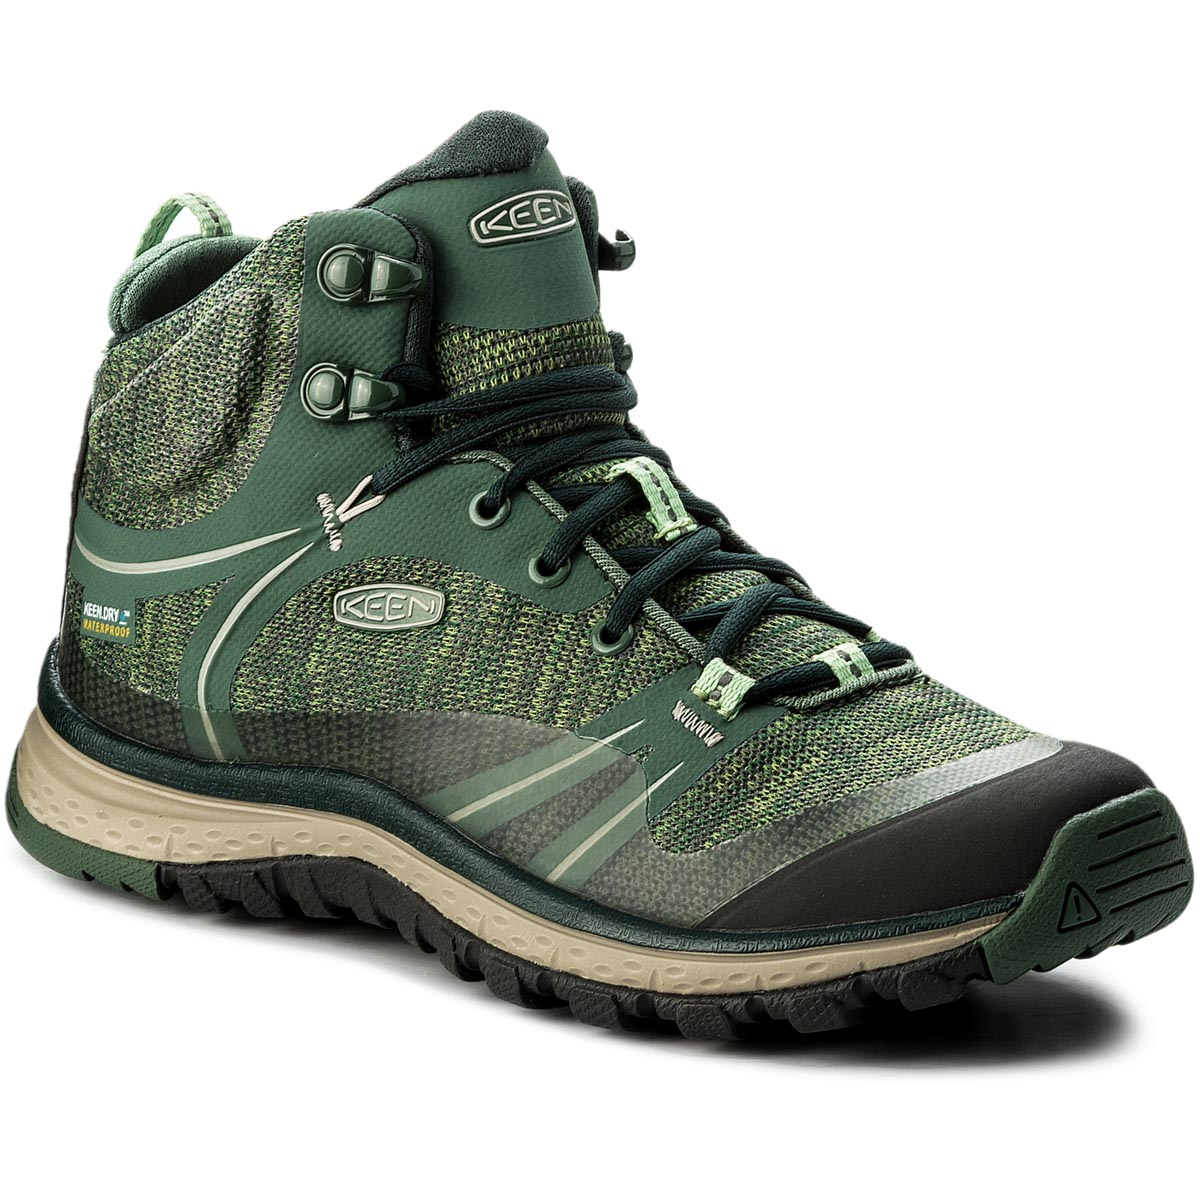 Trekkings Keen - Terradora Mid Wp 1018525 Duck Green/ Quiet Green imagine epantofi.ro 2021